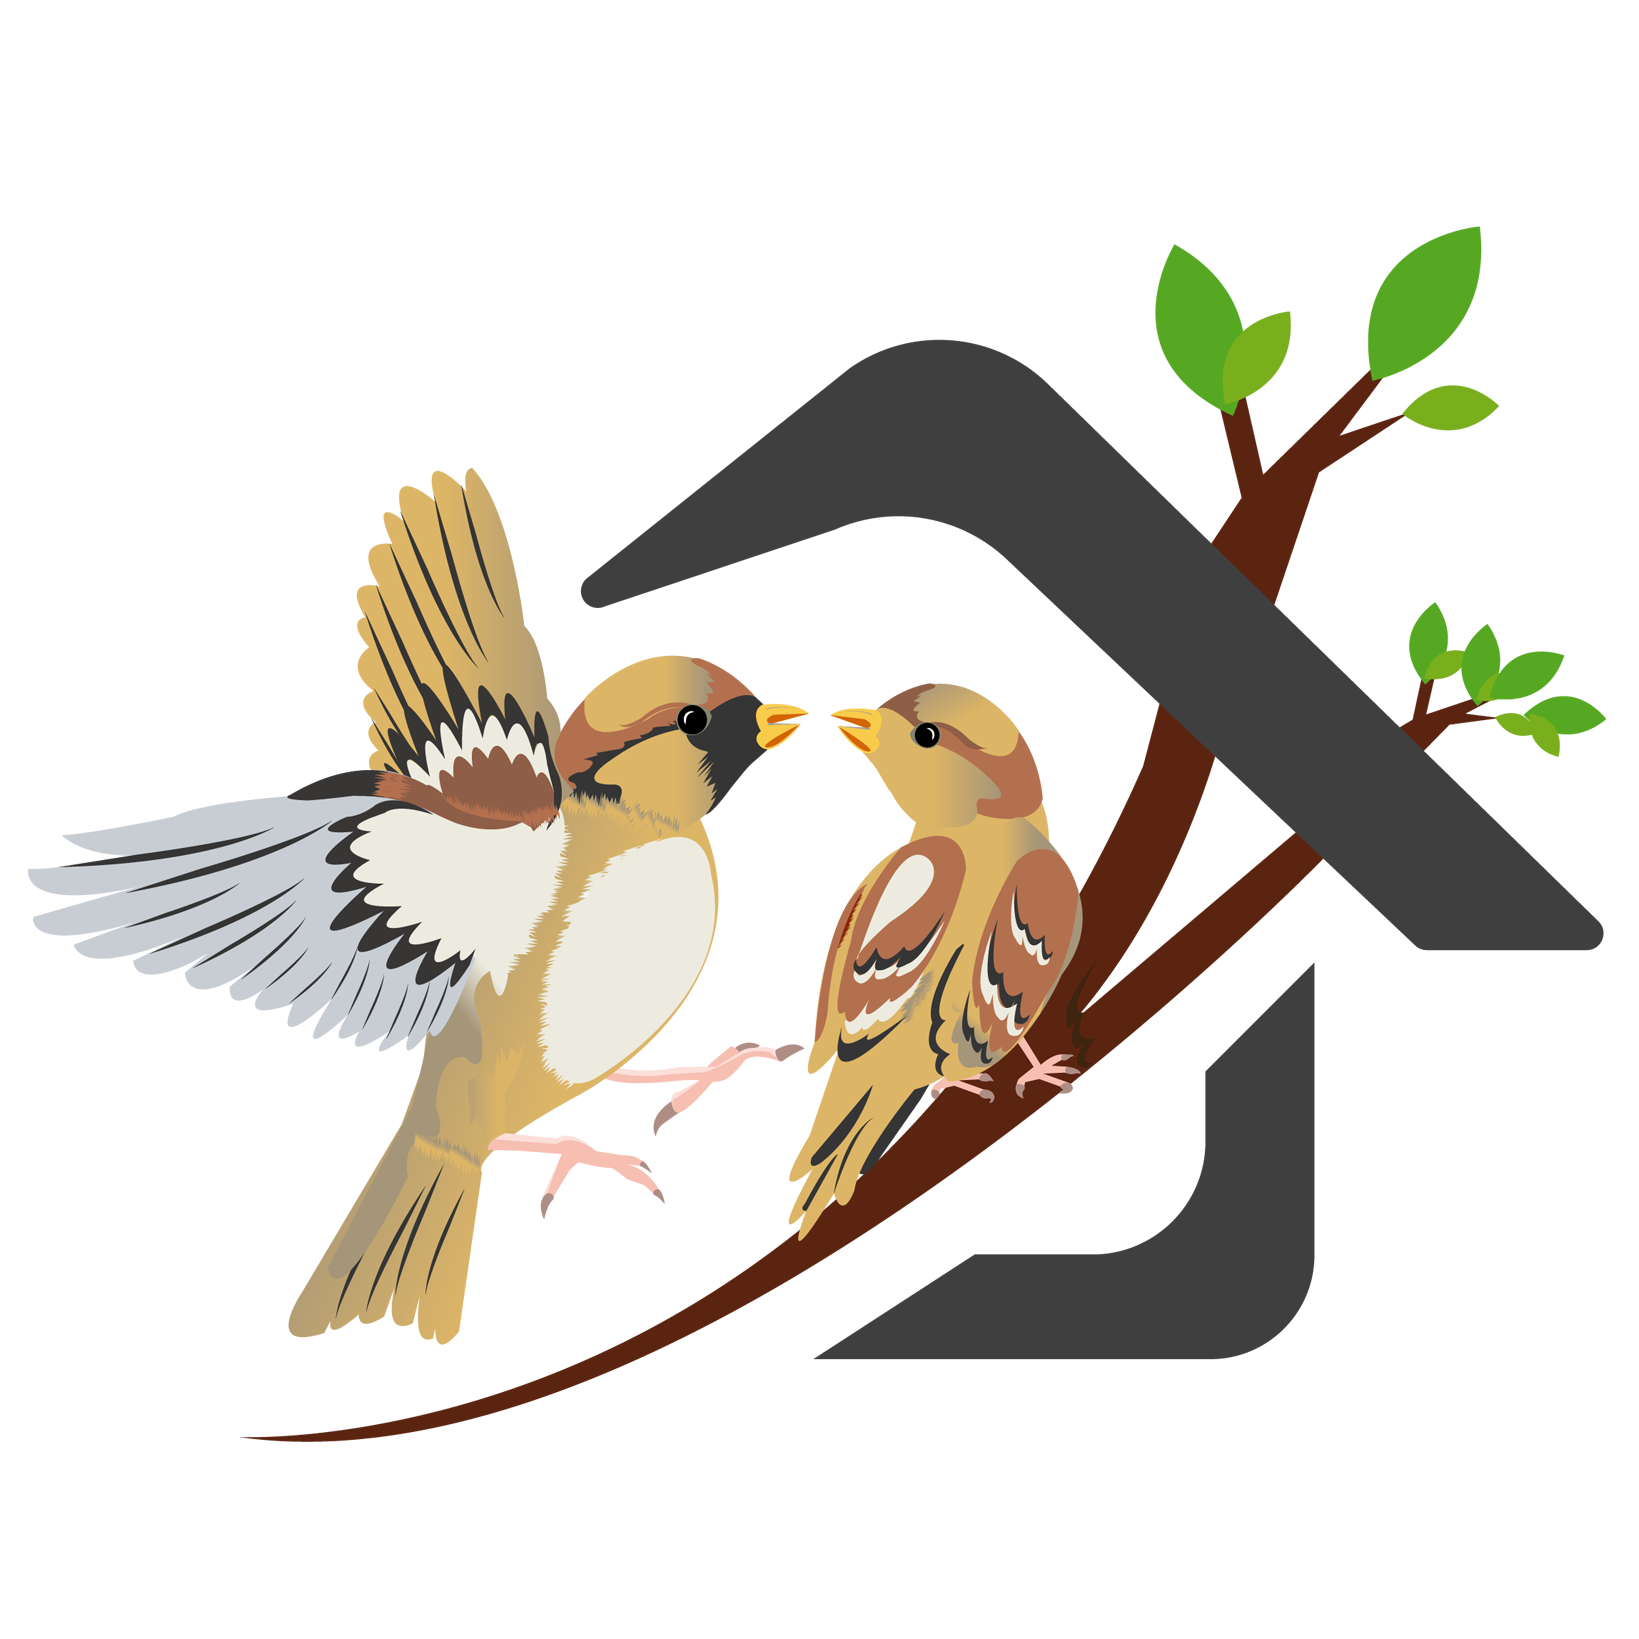 Nest clipart sparrow nest. Singing sparrows can we